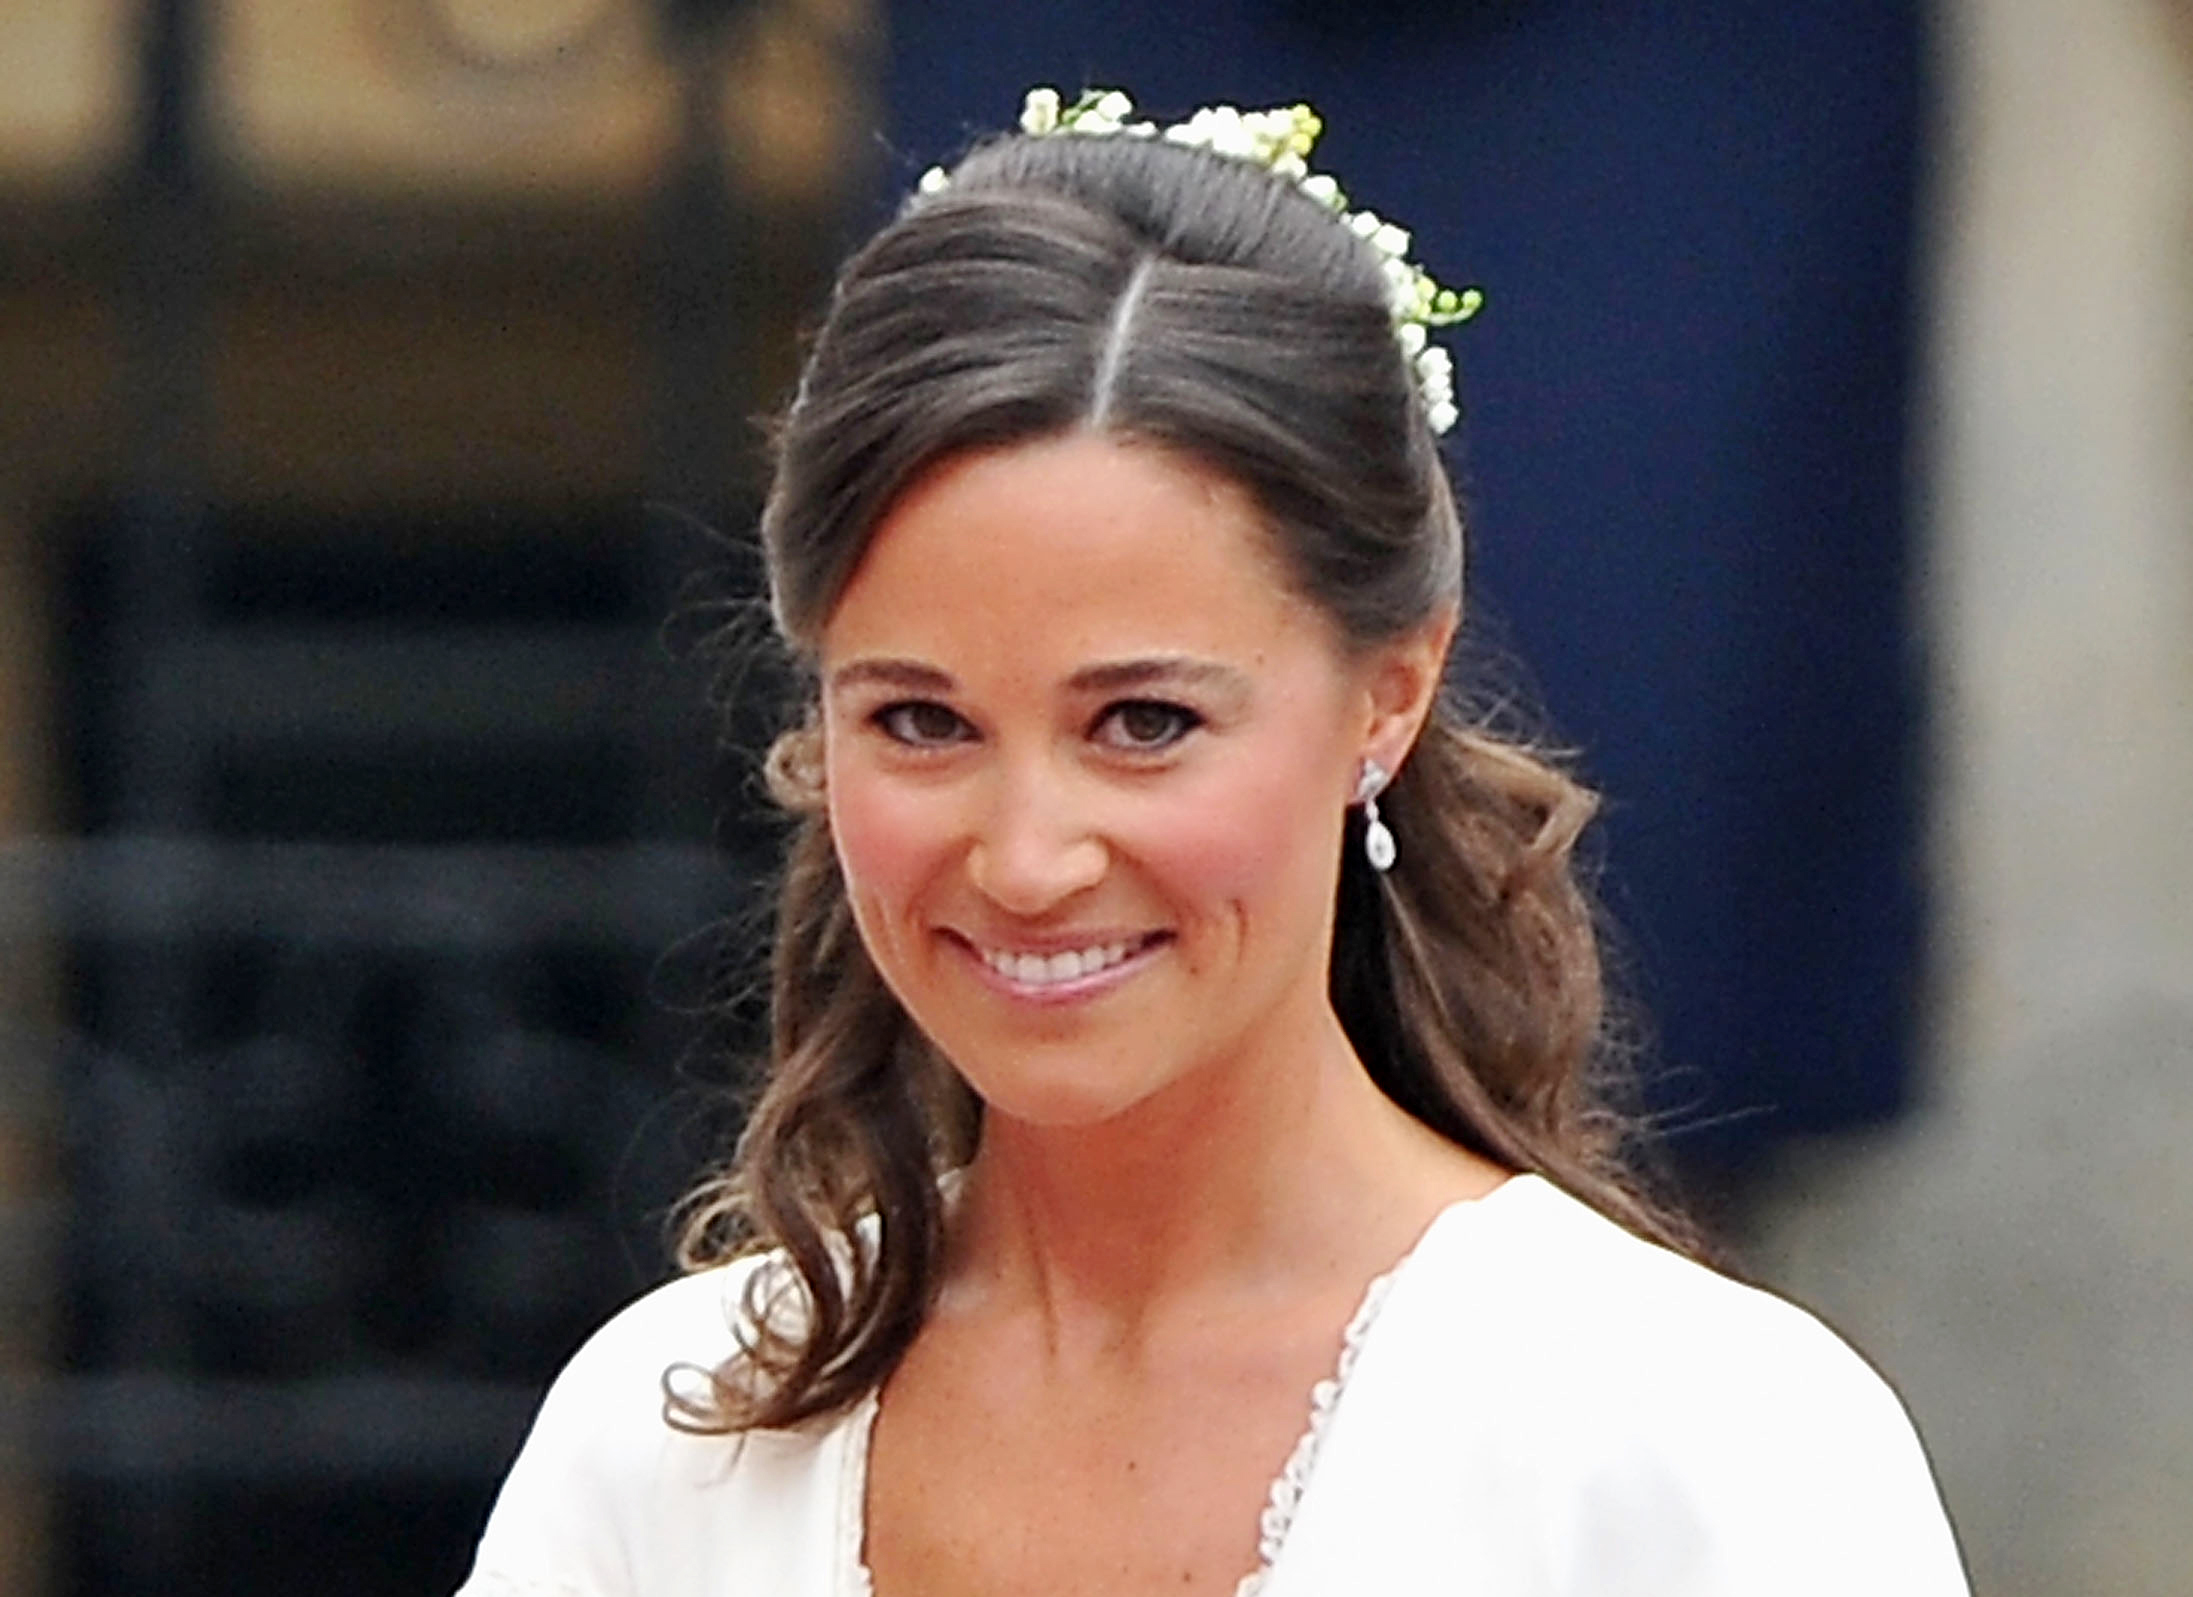 Pippa Middleton's engagement ring is totally *gorgeous* and we're all kinds of obsessed